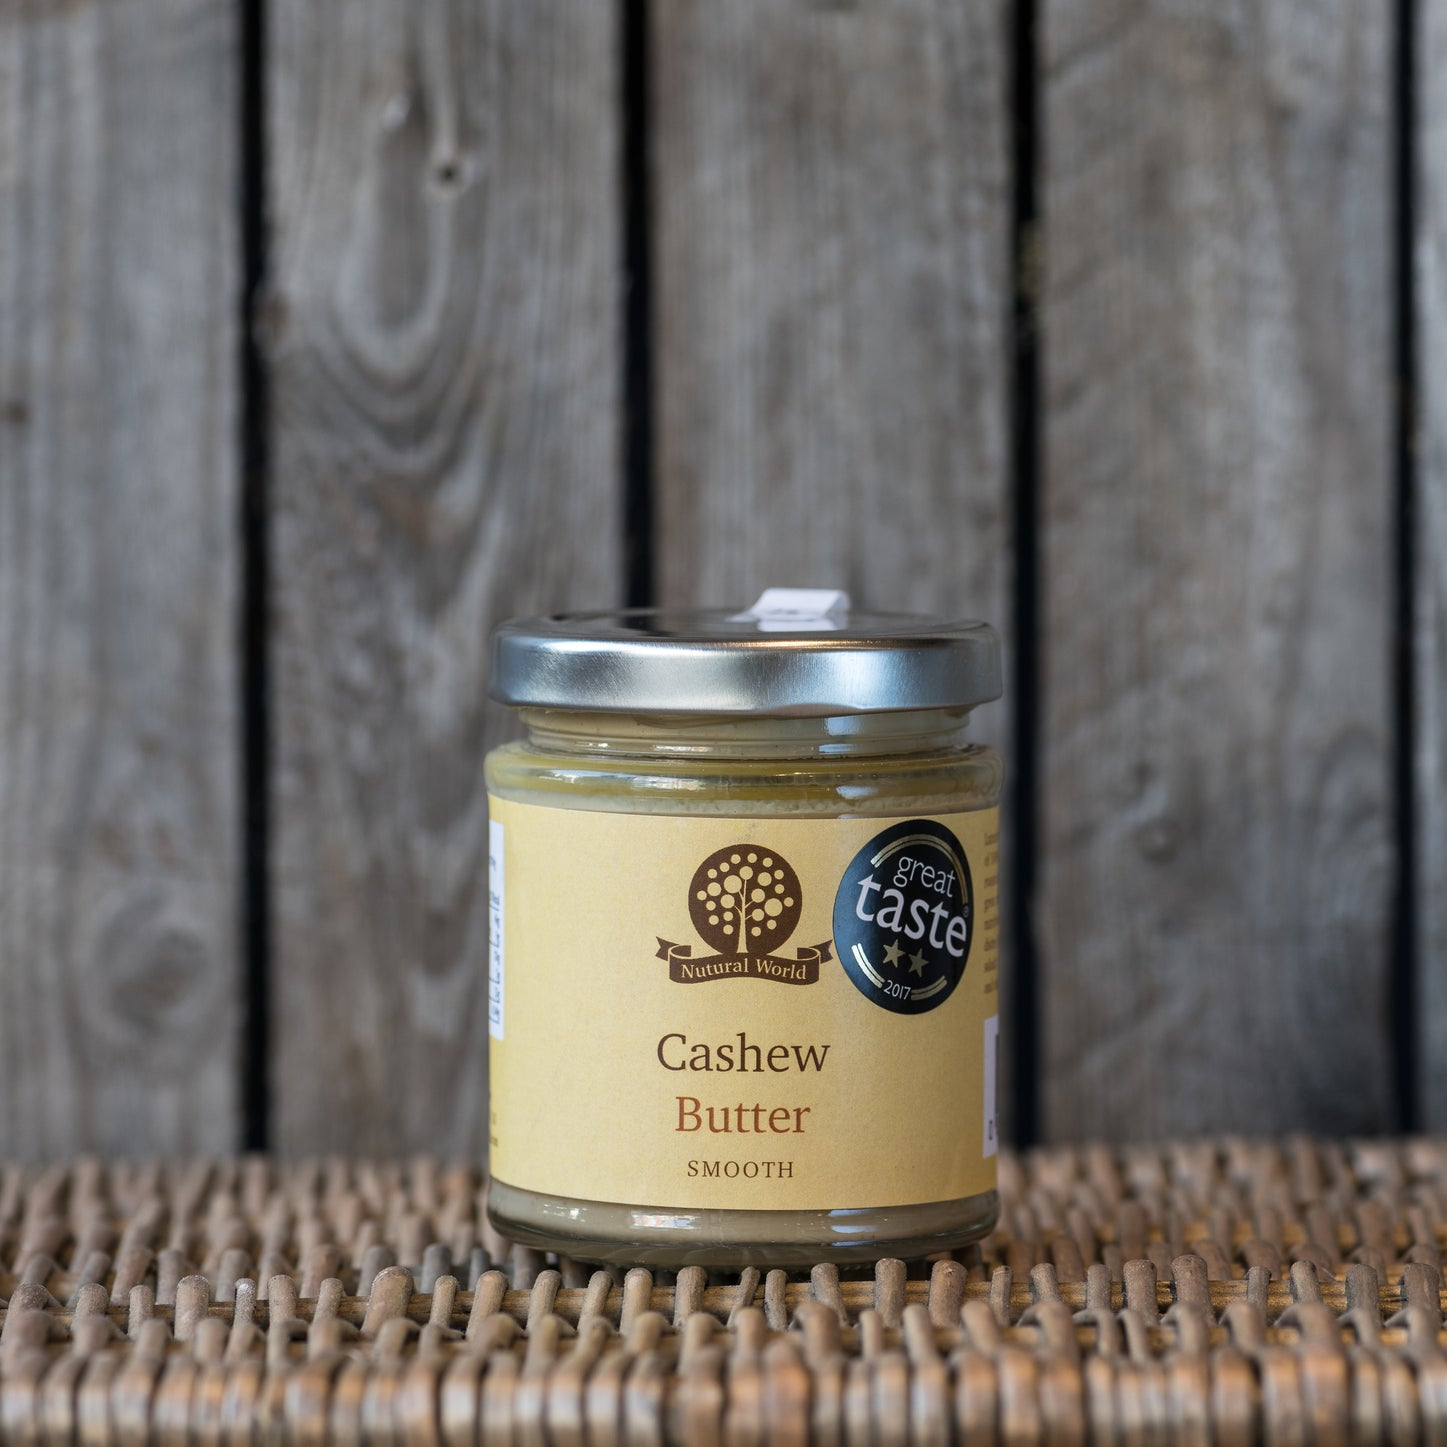 Cashew Nut Butter - Smooth